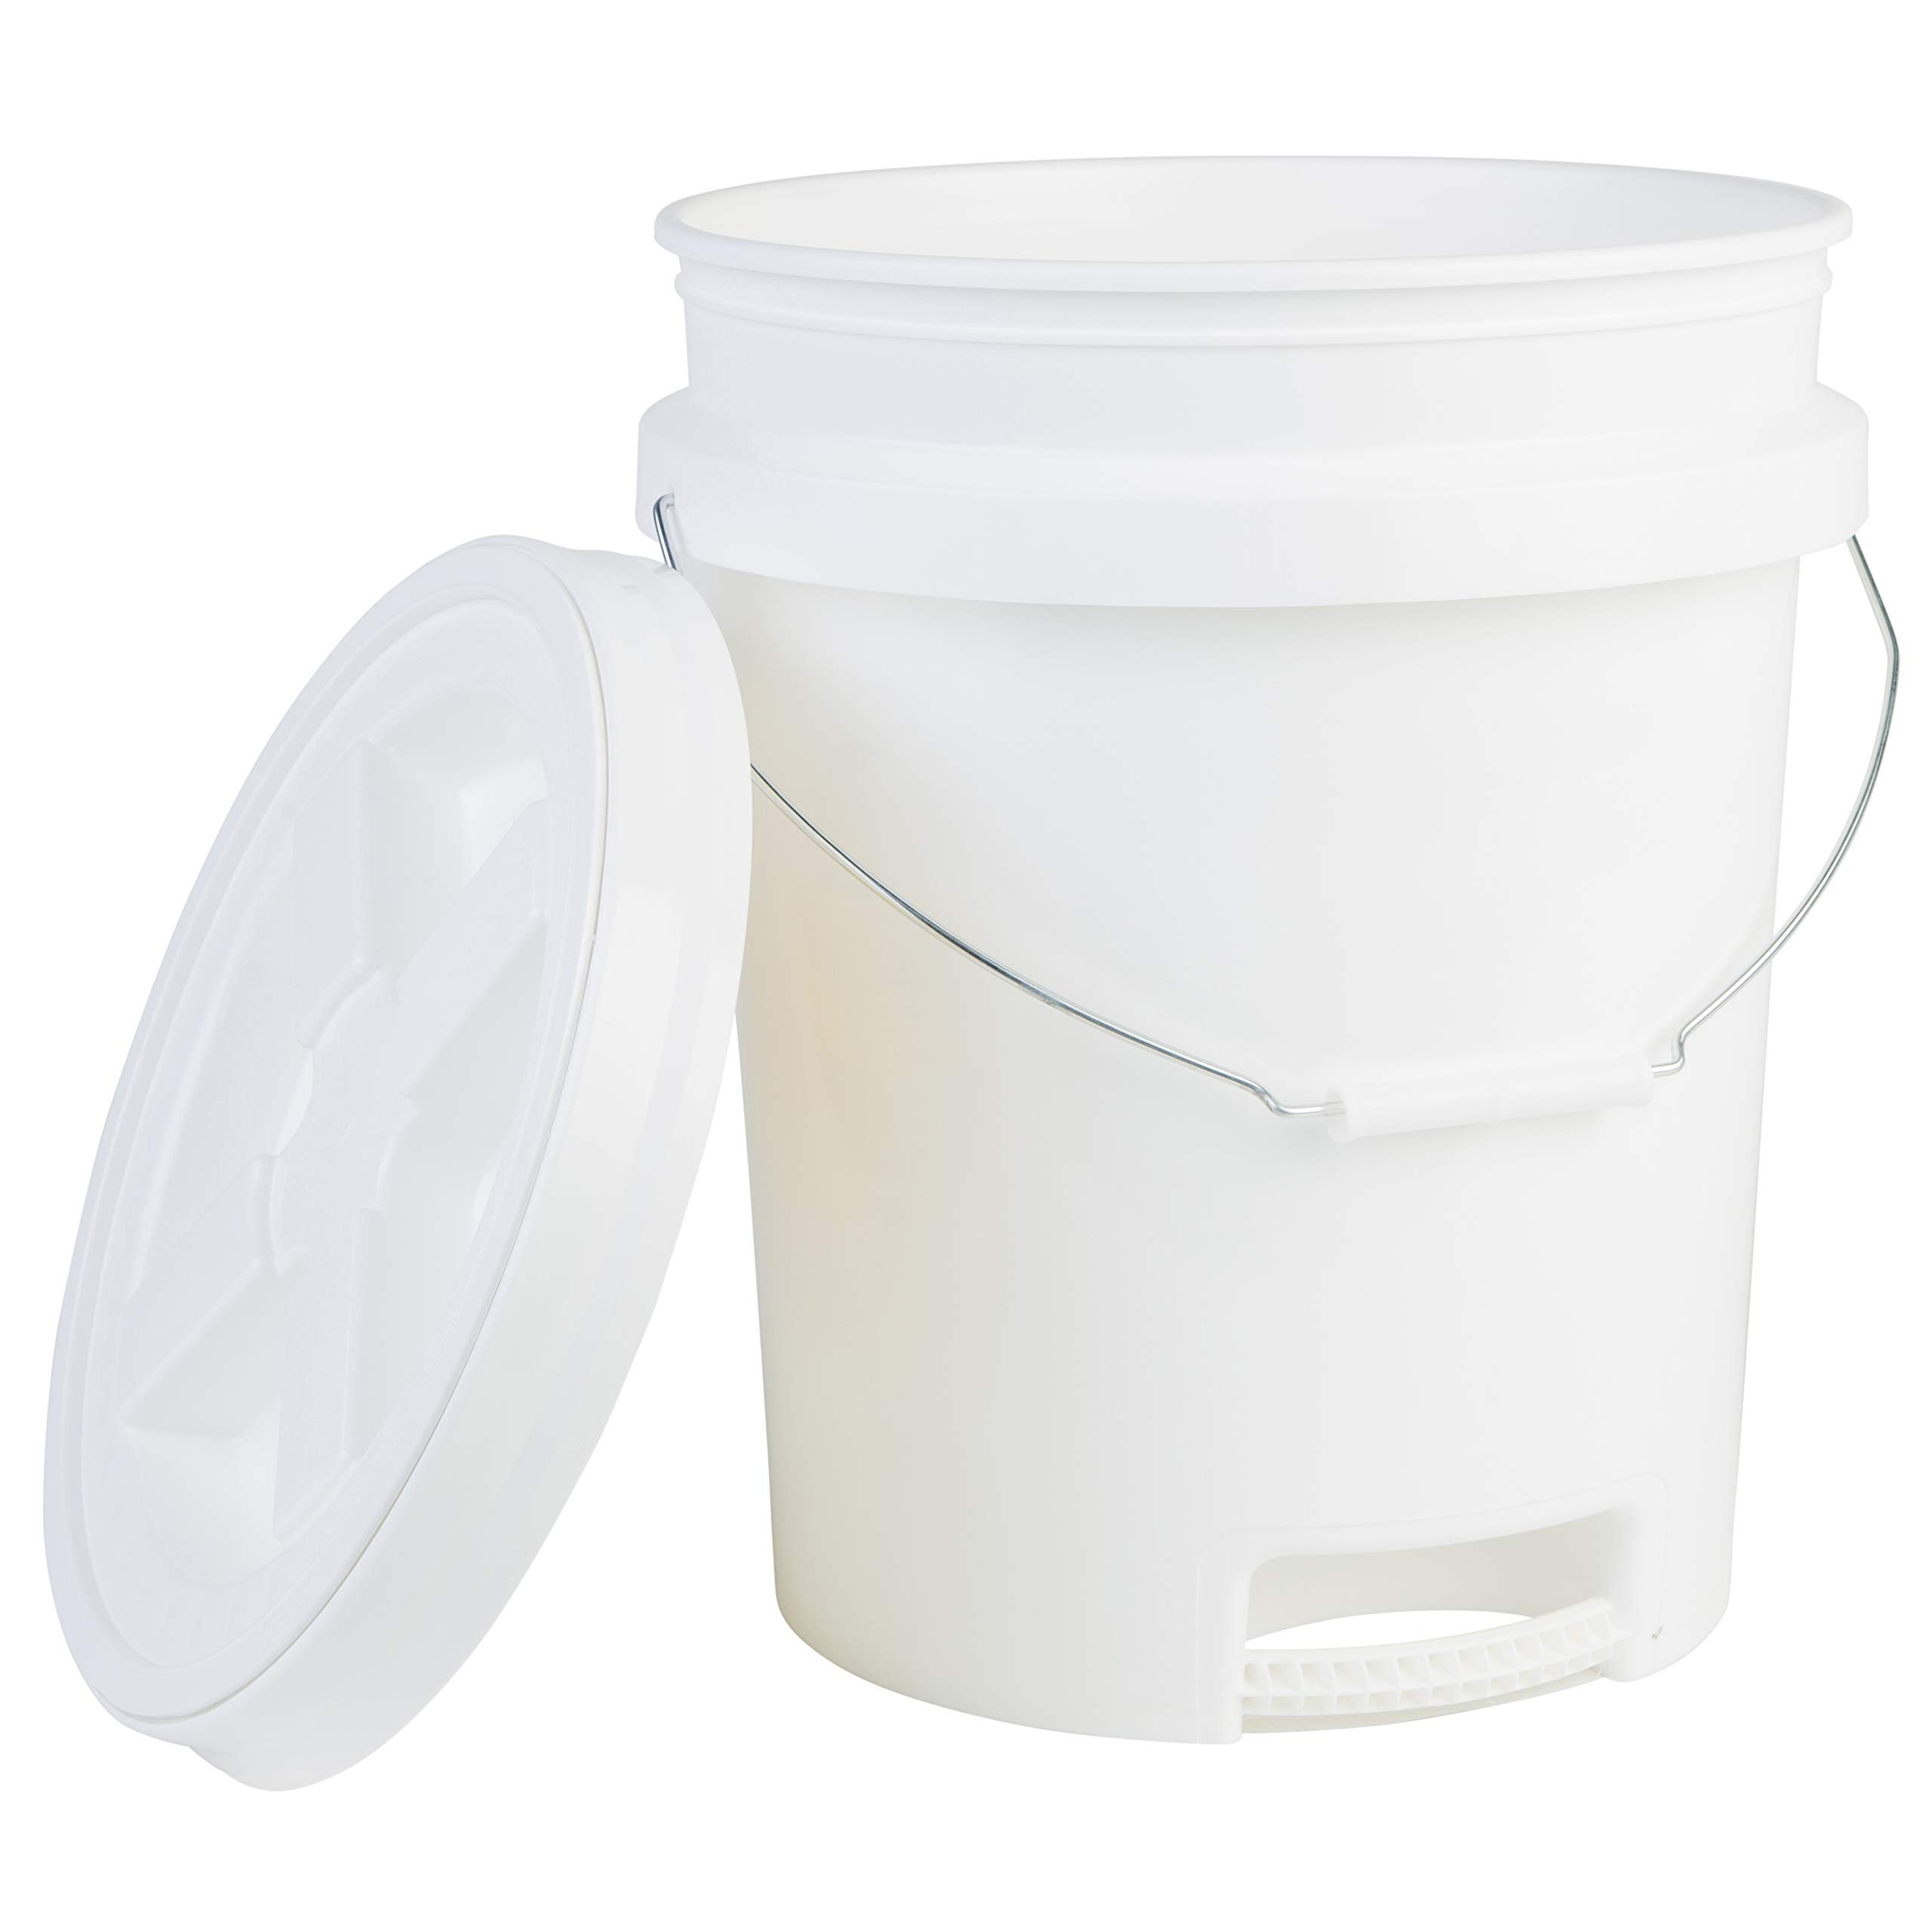 Hudson Exchange 5 Gallon Bucket with Bottom Grip Handle & Gamma Seal Lid, HDPE, White